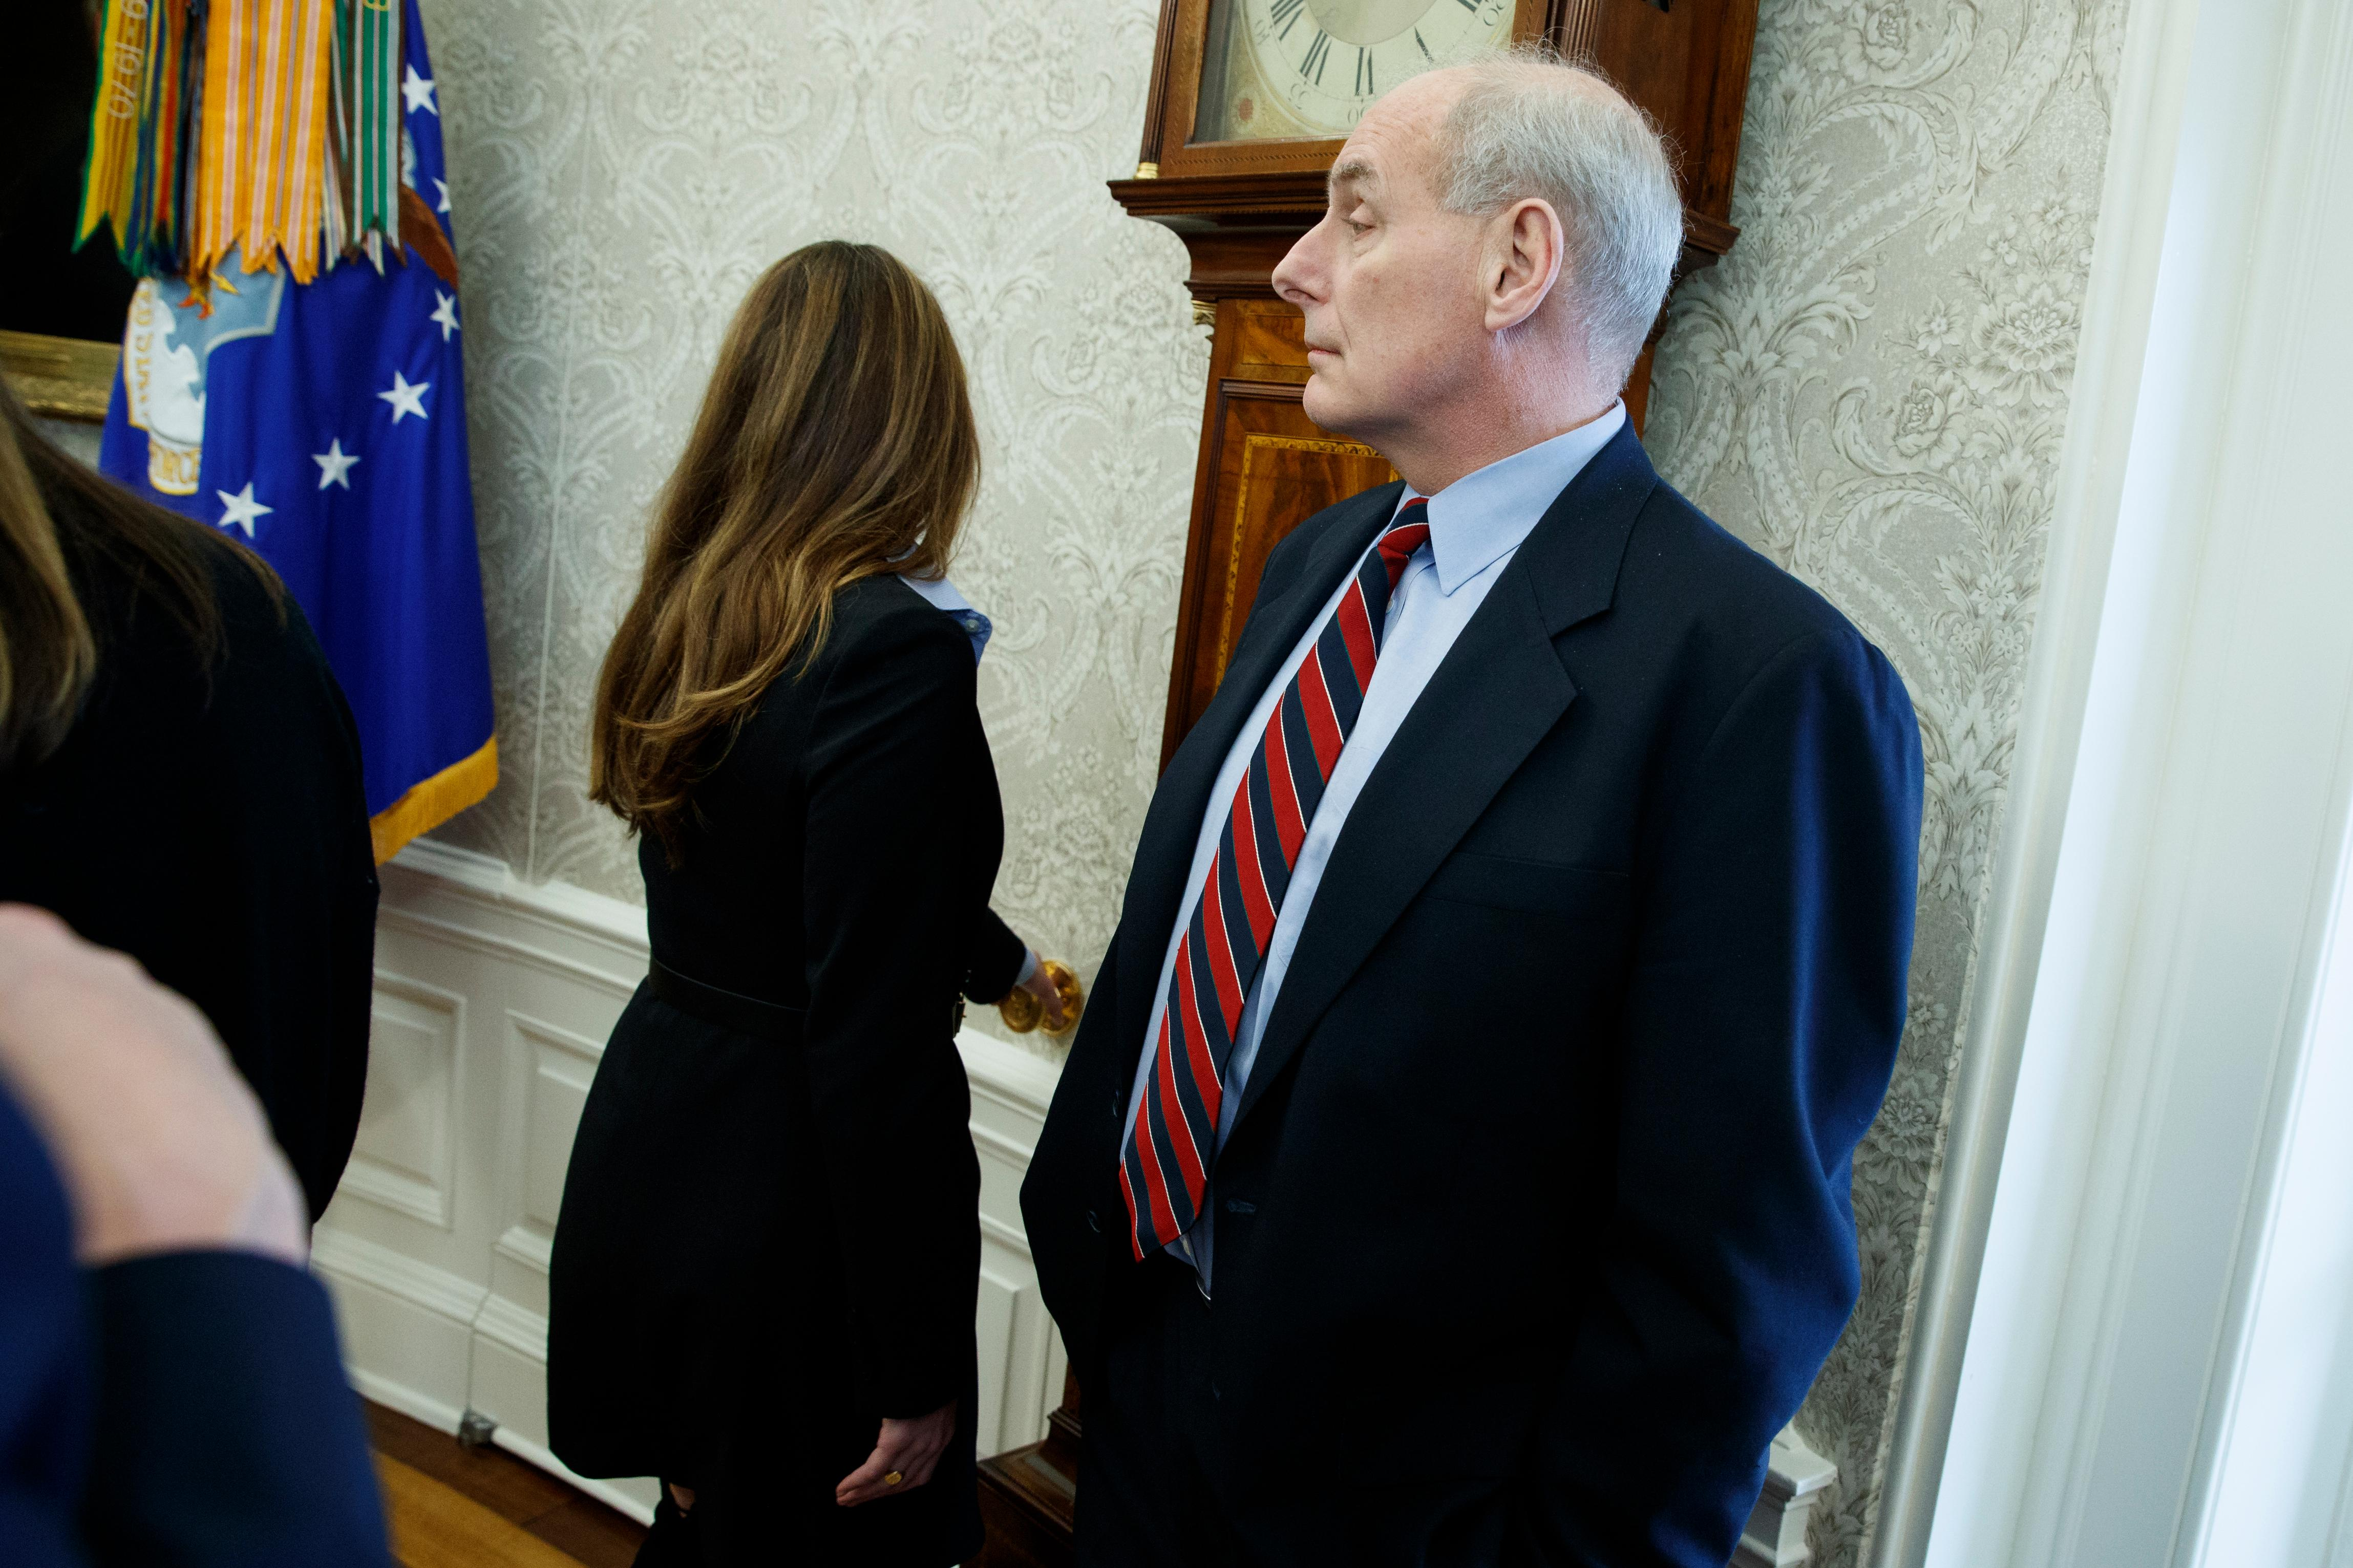 White House Communications Director Hope Hicks, left, walks out of the Oval Office as White House Chief of Staff John Kelly listens during a meeting between President Donald Trump and campaign volunteer Shane Bouvet, Friday, Feb. 9, 2018, in Washington. (AP Photo/Evan Vucci)